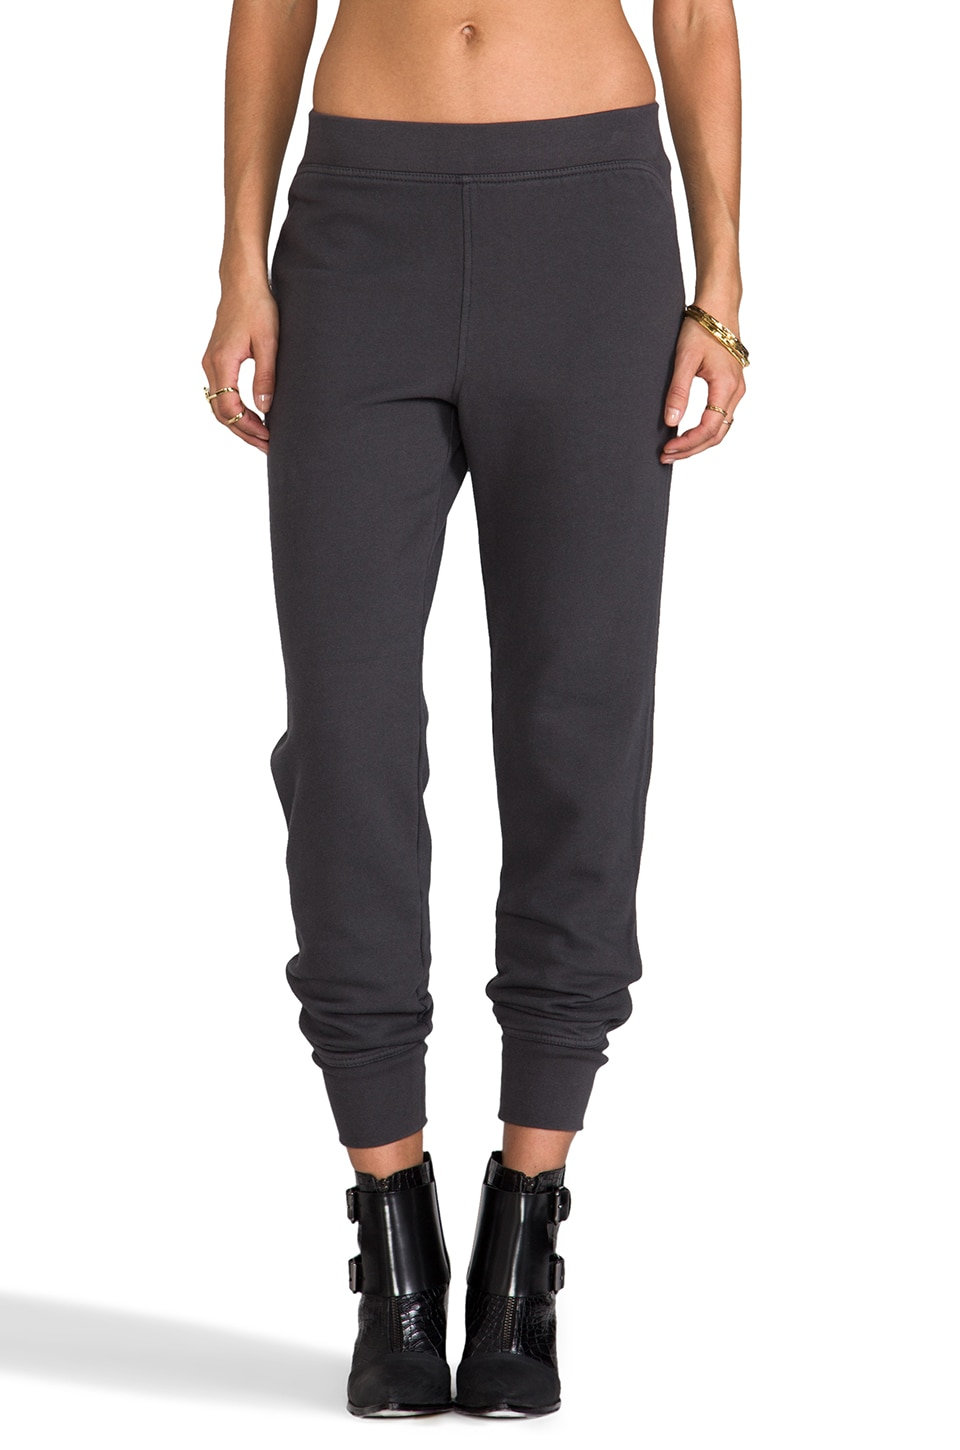 T by Alexander Wang Vintage Fleece Sweatpant in Charcoal